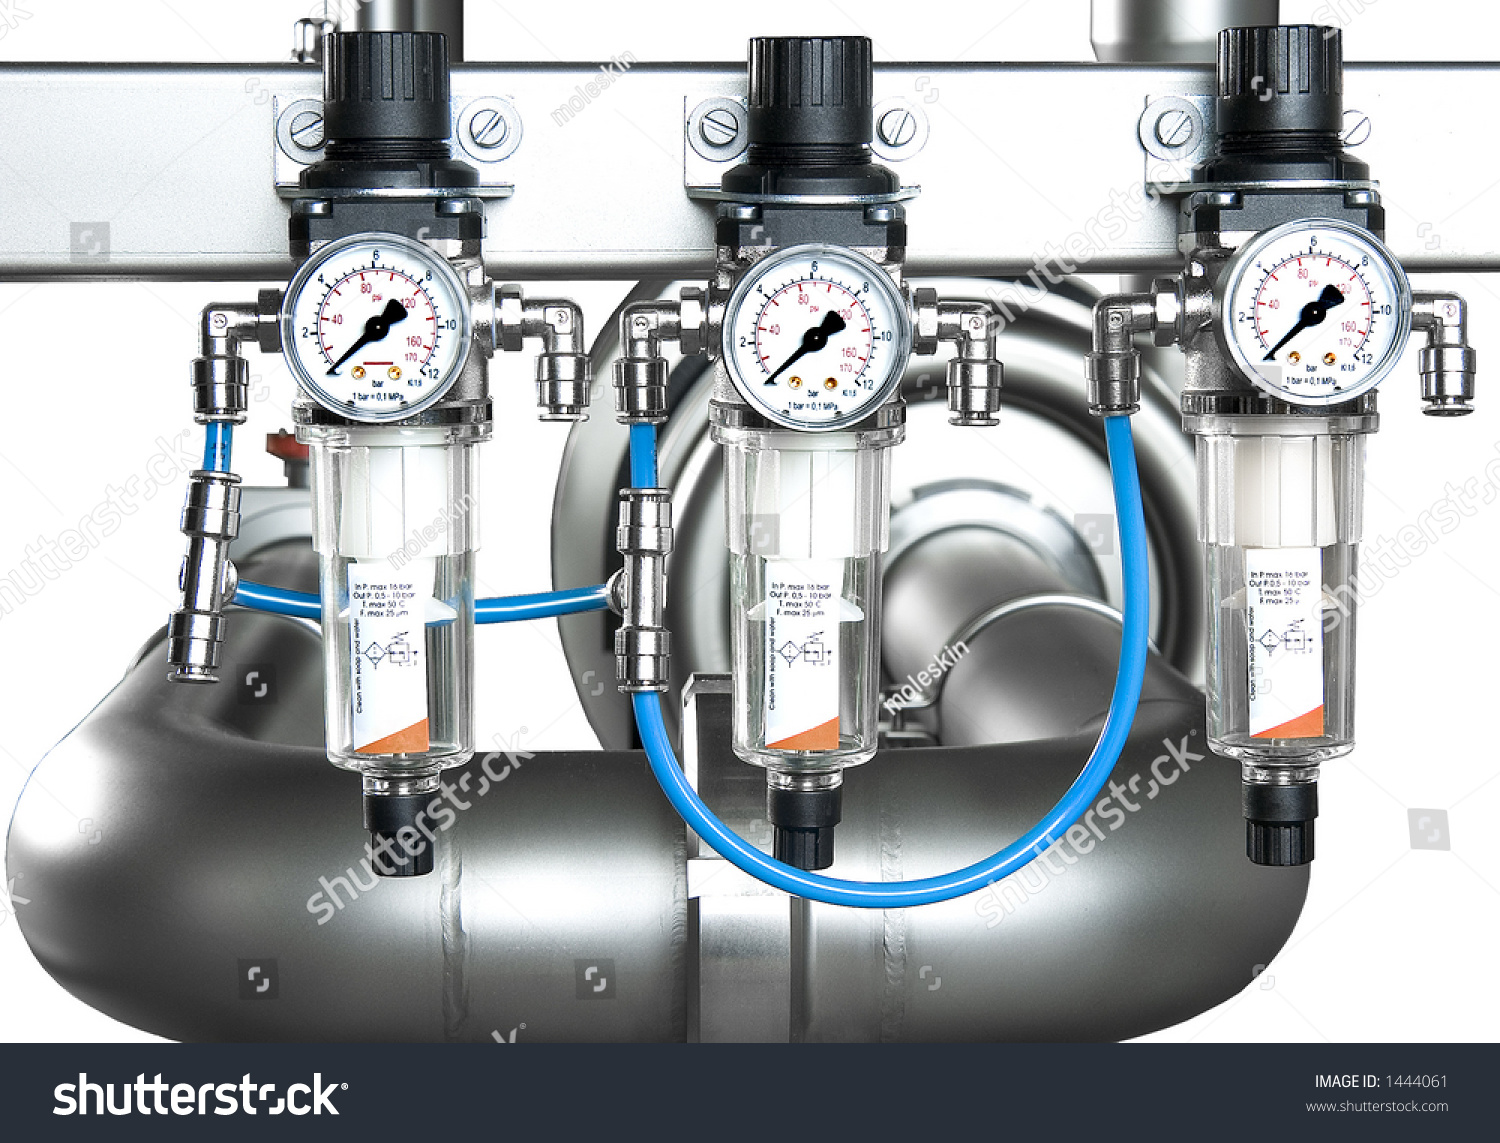 Manometer Pipe Precision Pressuregauge Stock Photo 1444061 ...